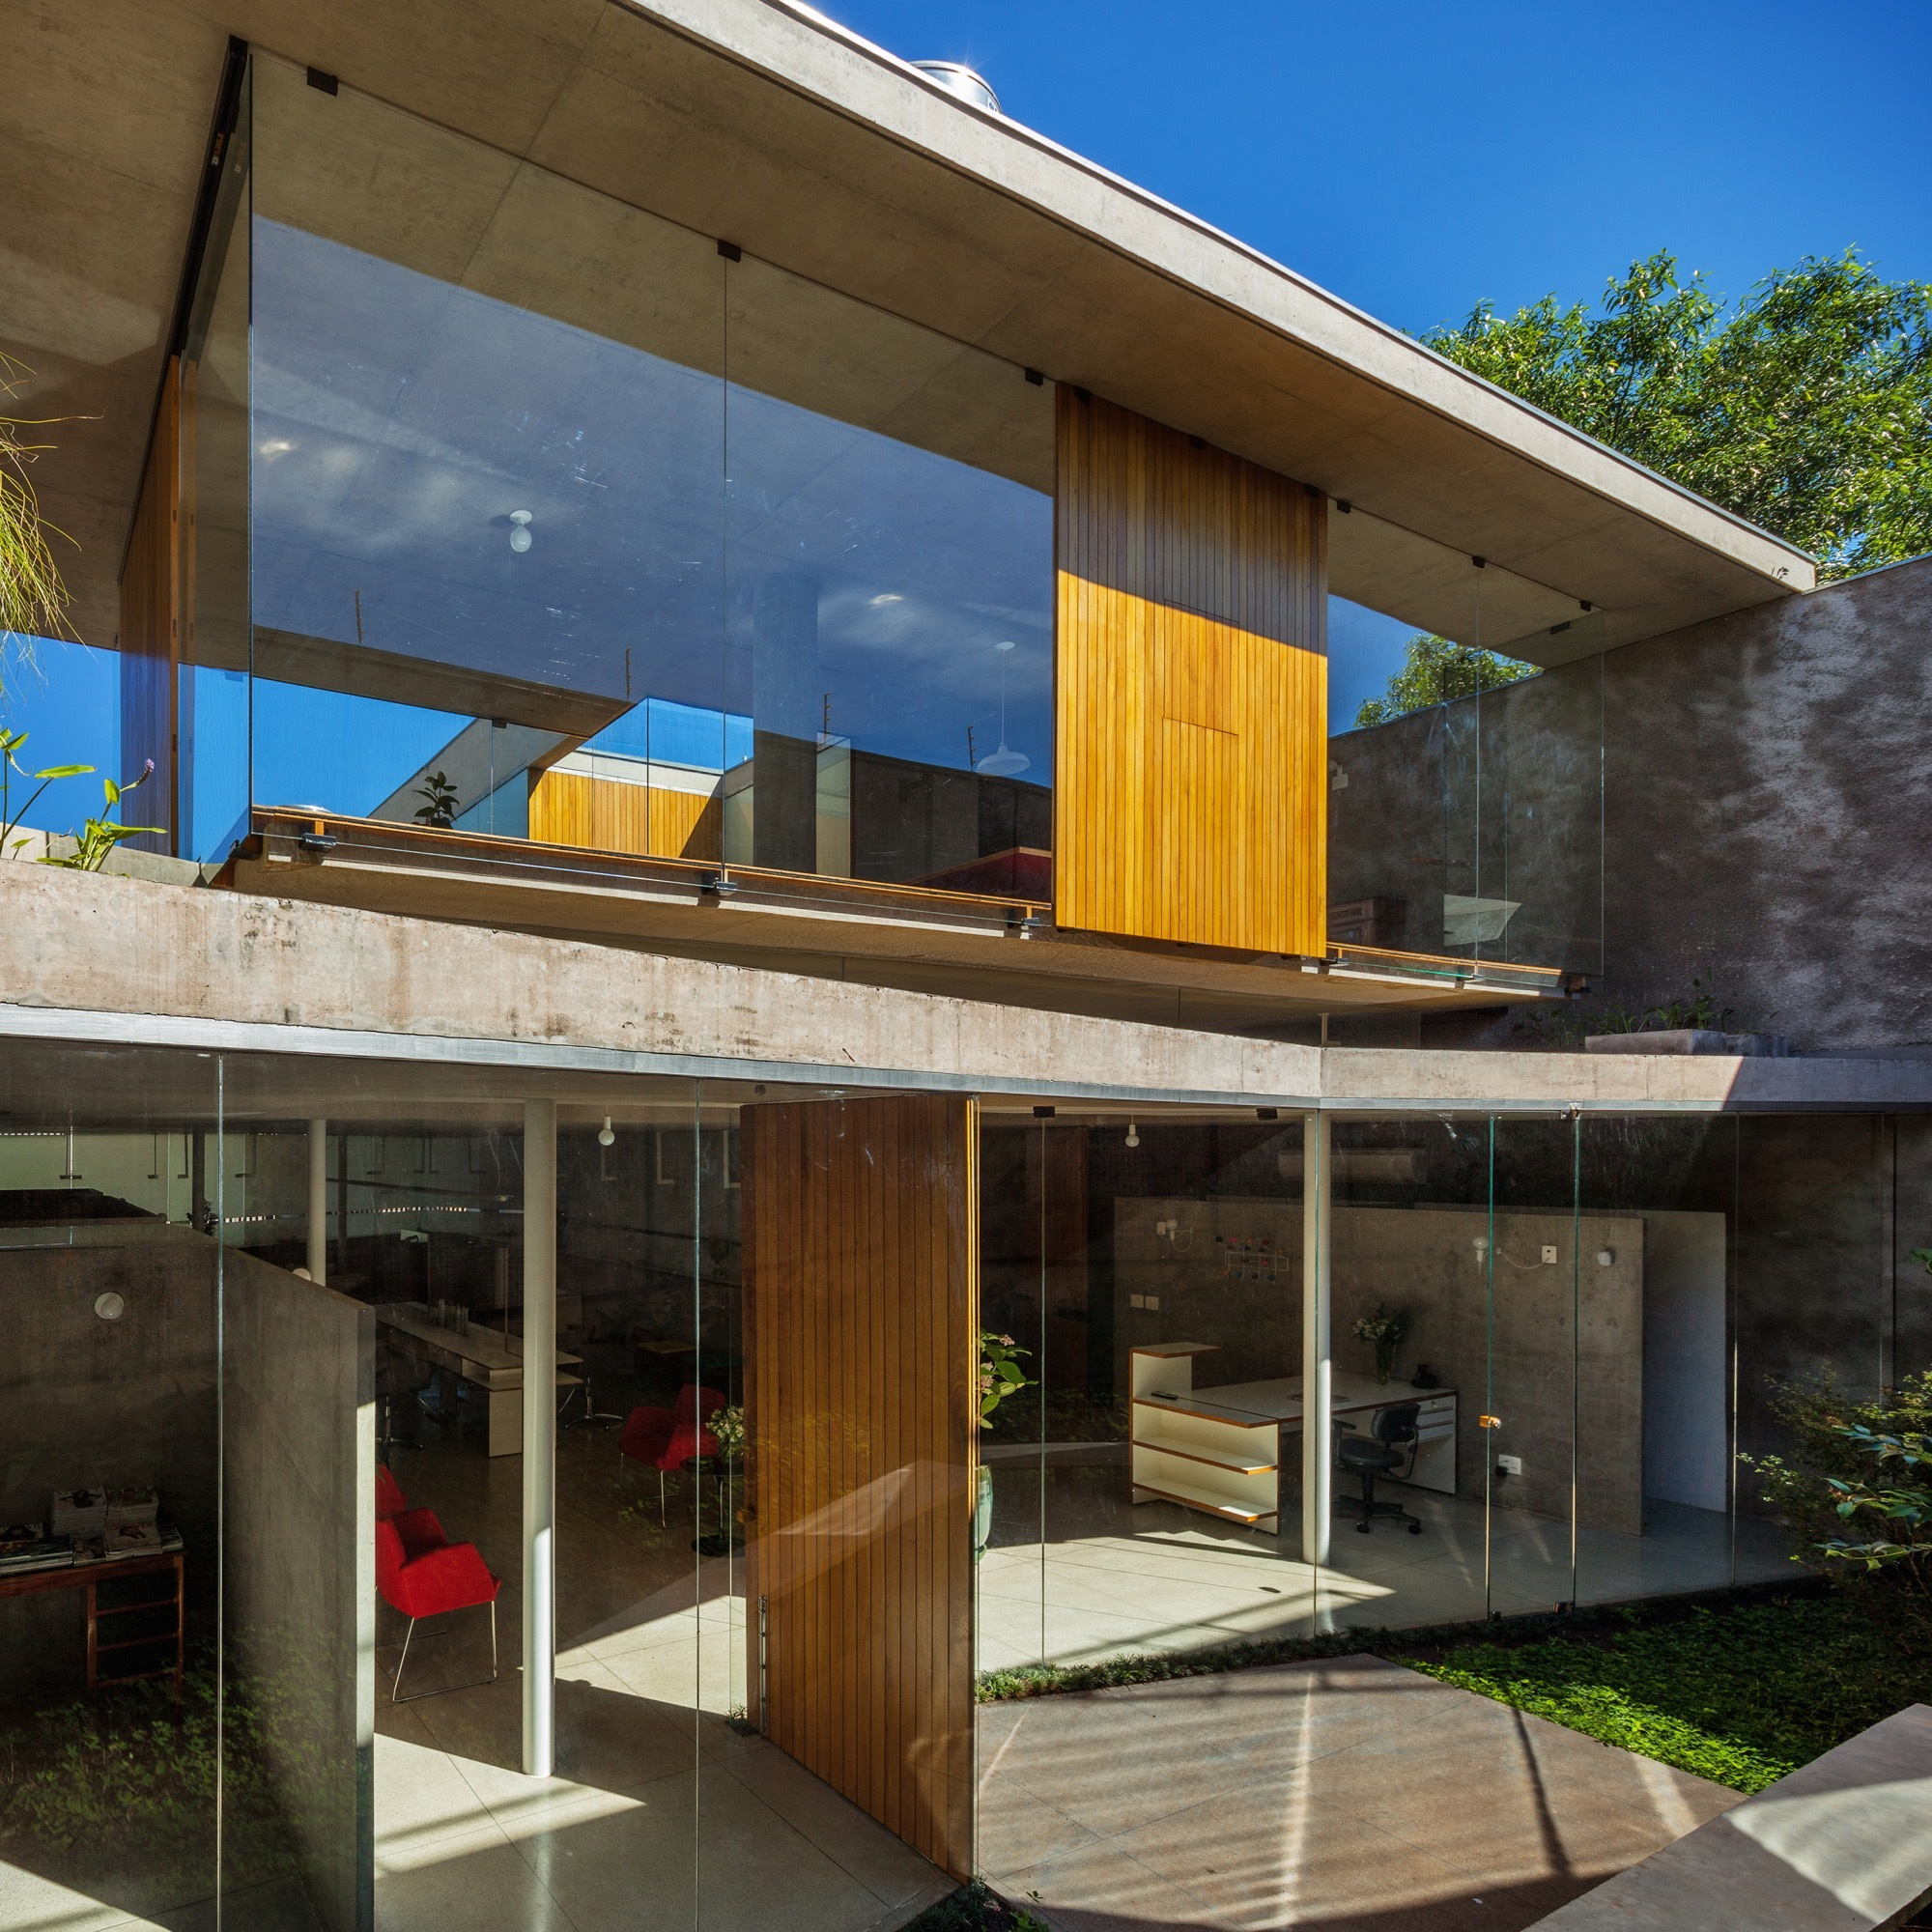 House and Studio in Orlandia / SPBR arquitetos - ArchDaily